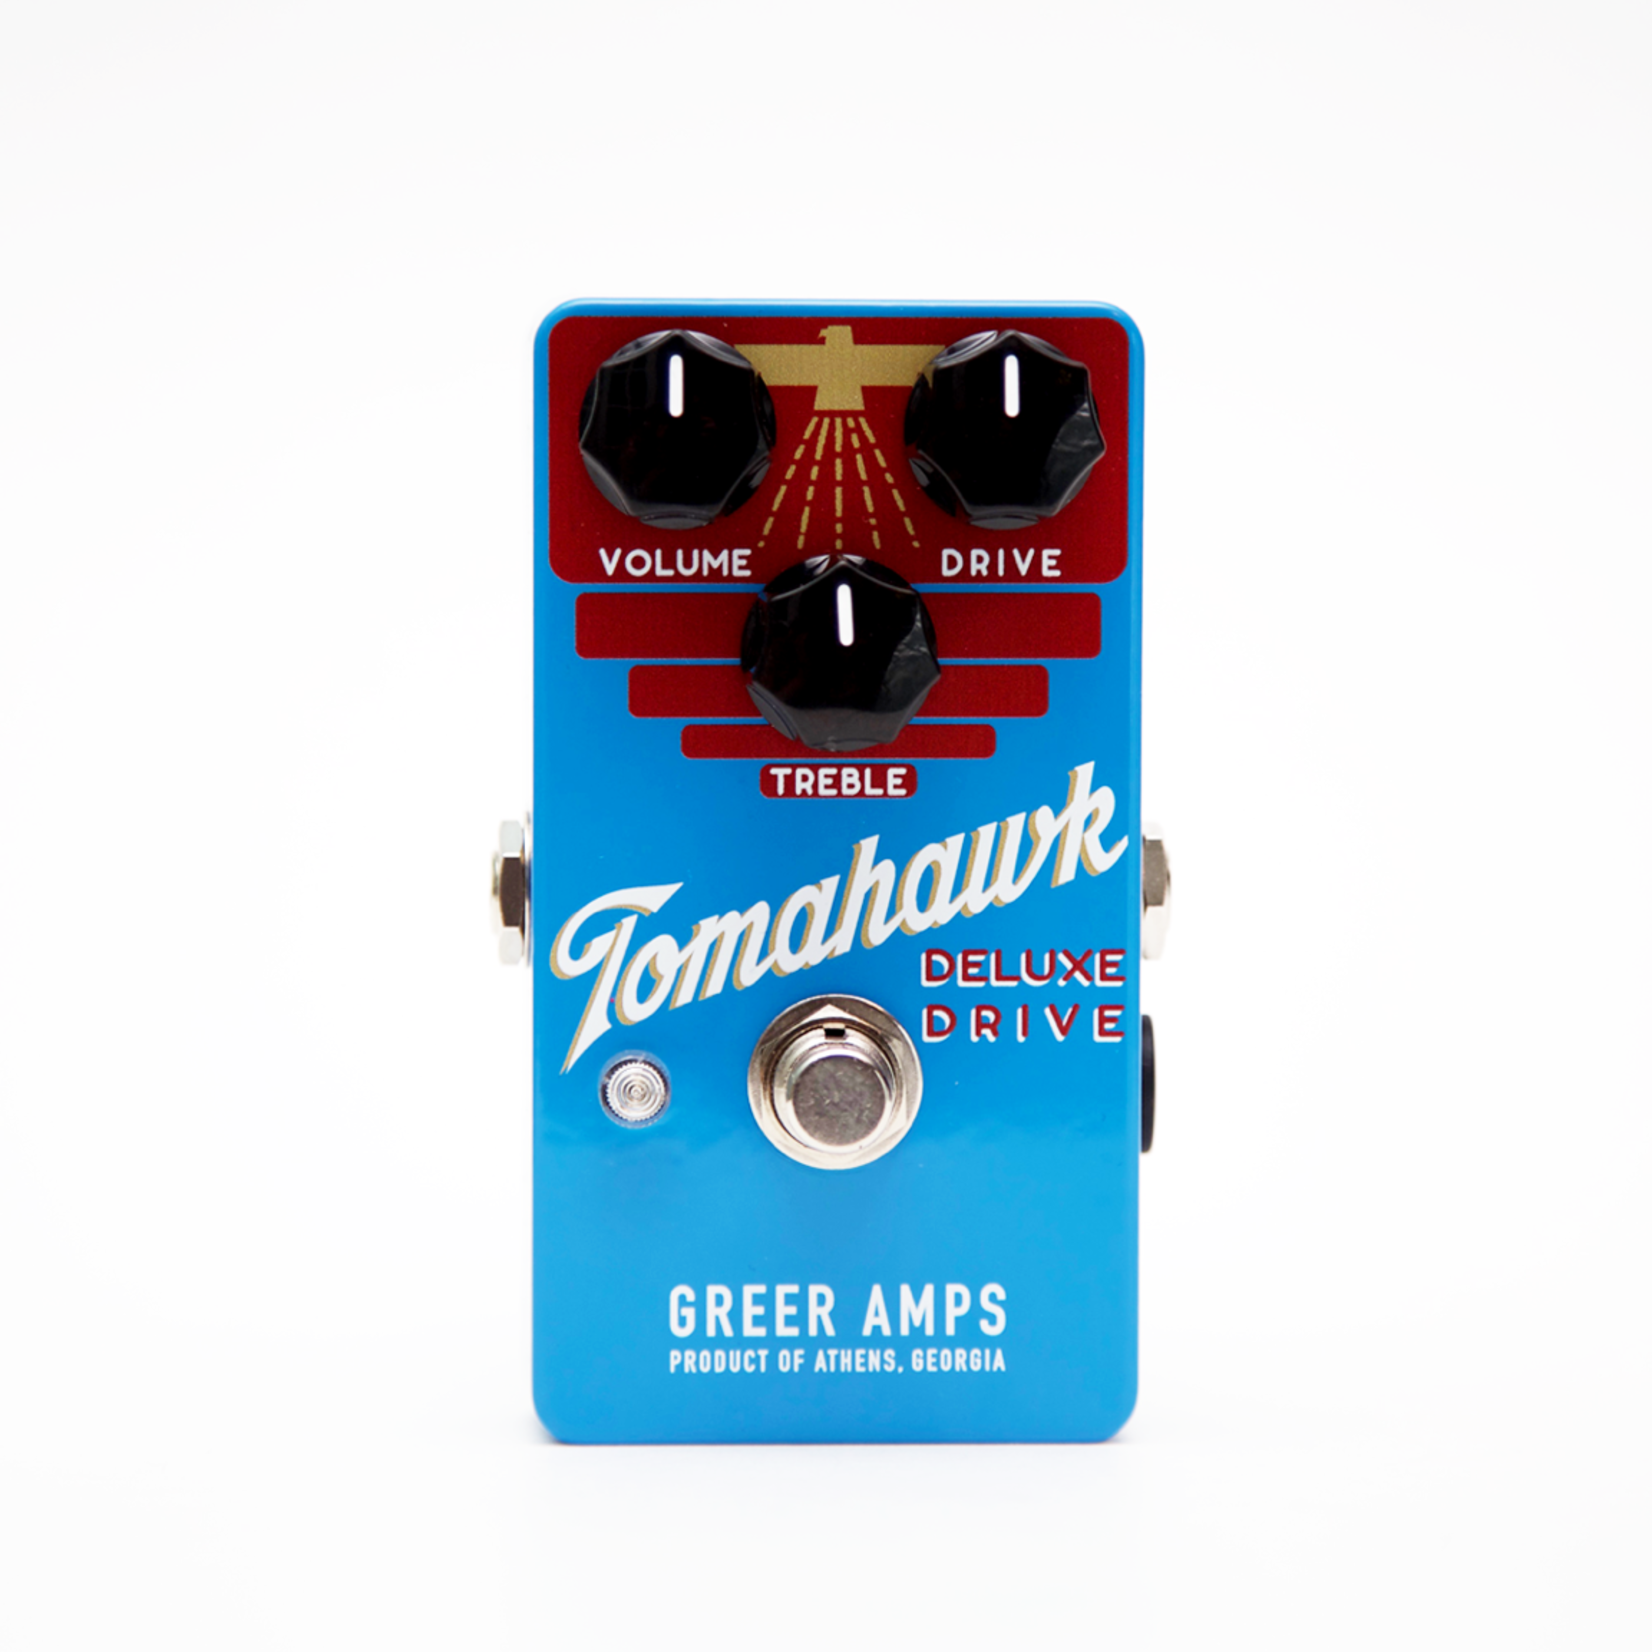 Greer Amps Greer Amps Tomahawk Deluxe Drive